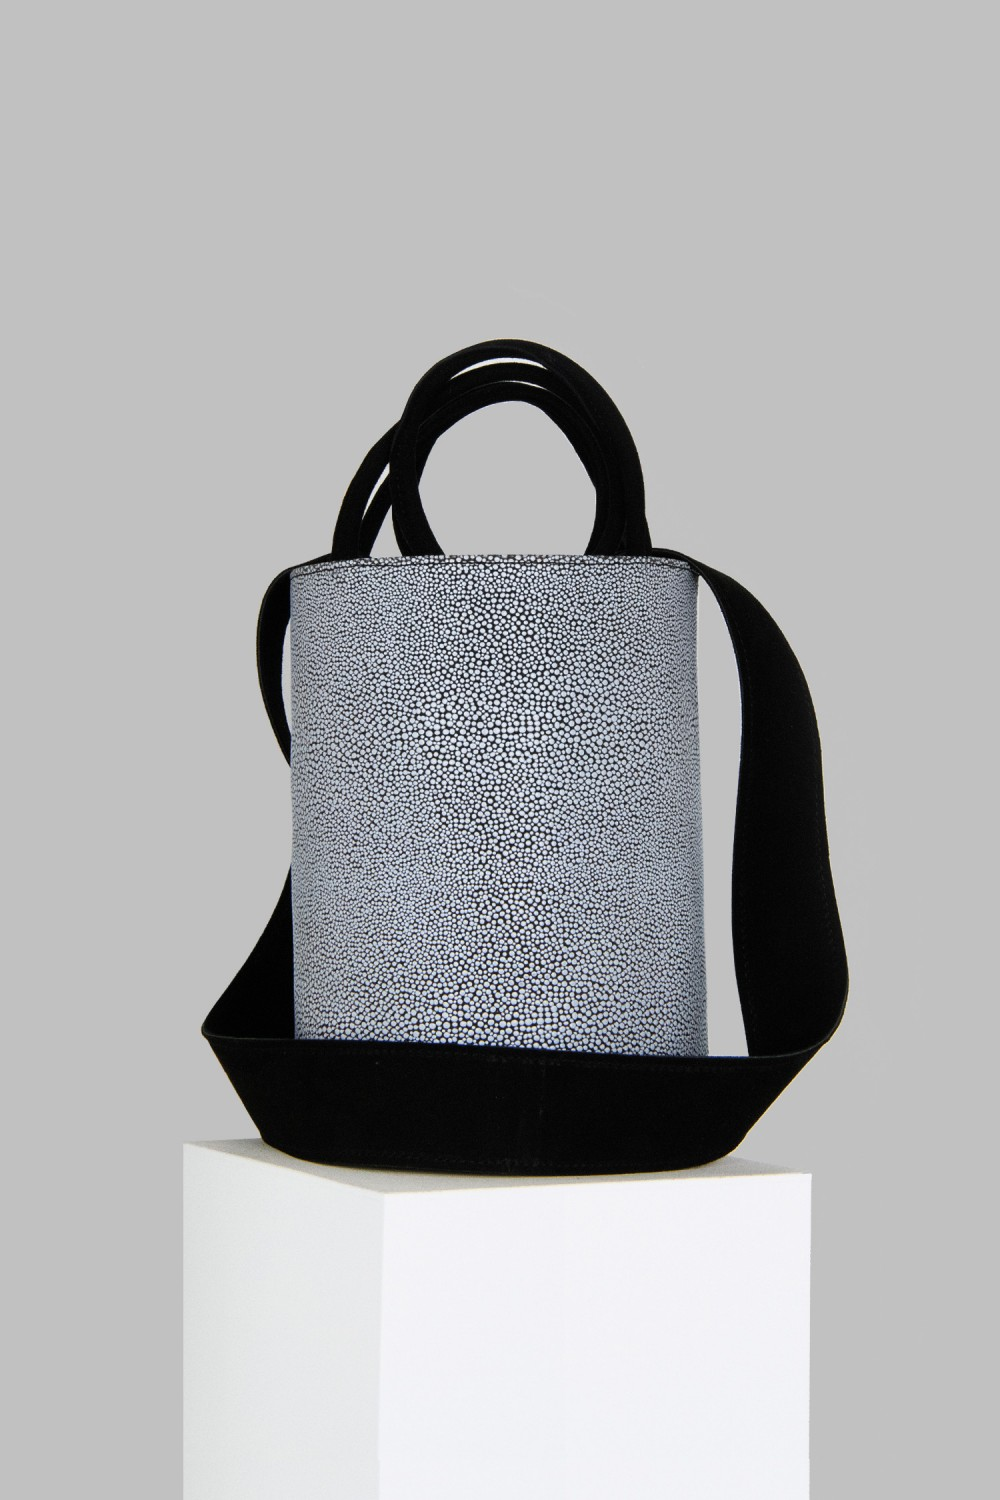 XL Kyklos Black and White Stingray Embossed Leather Bag